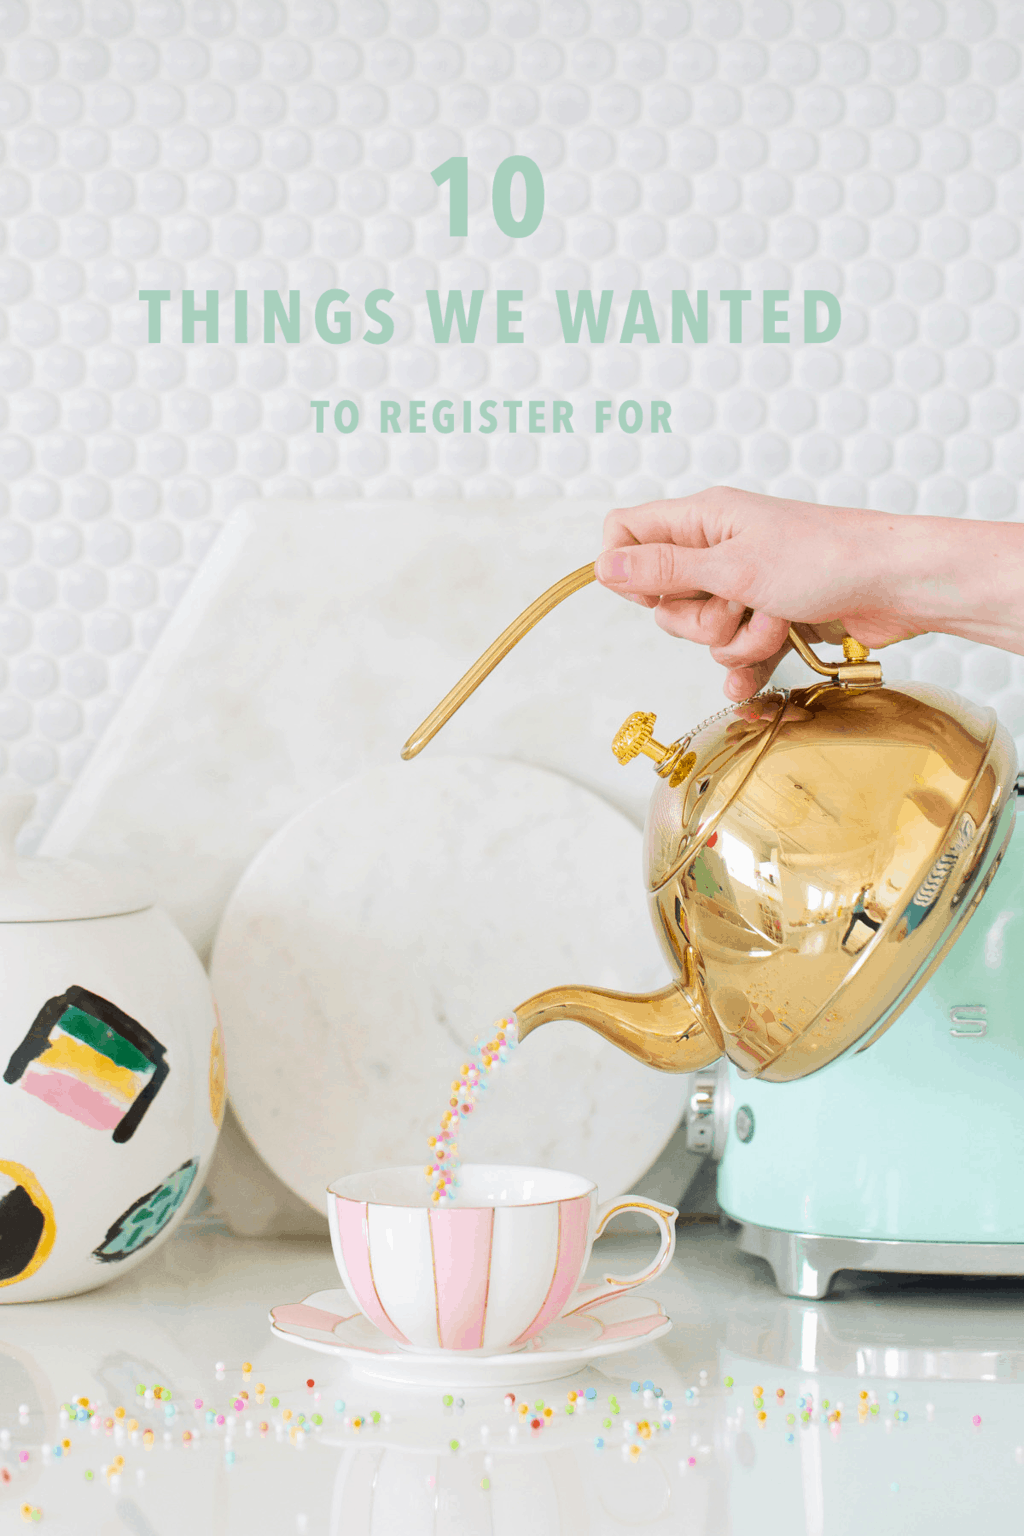 10 Things We Couldn't Wait to Register For by top Houston lifestyle blogger Ashley Rose of Sugar & Cloth